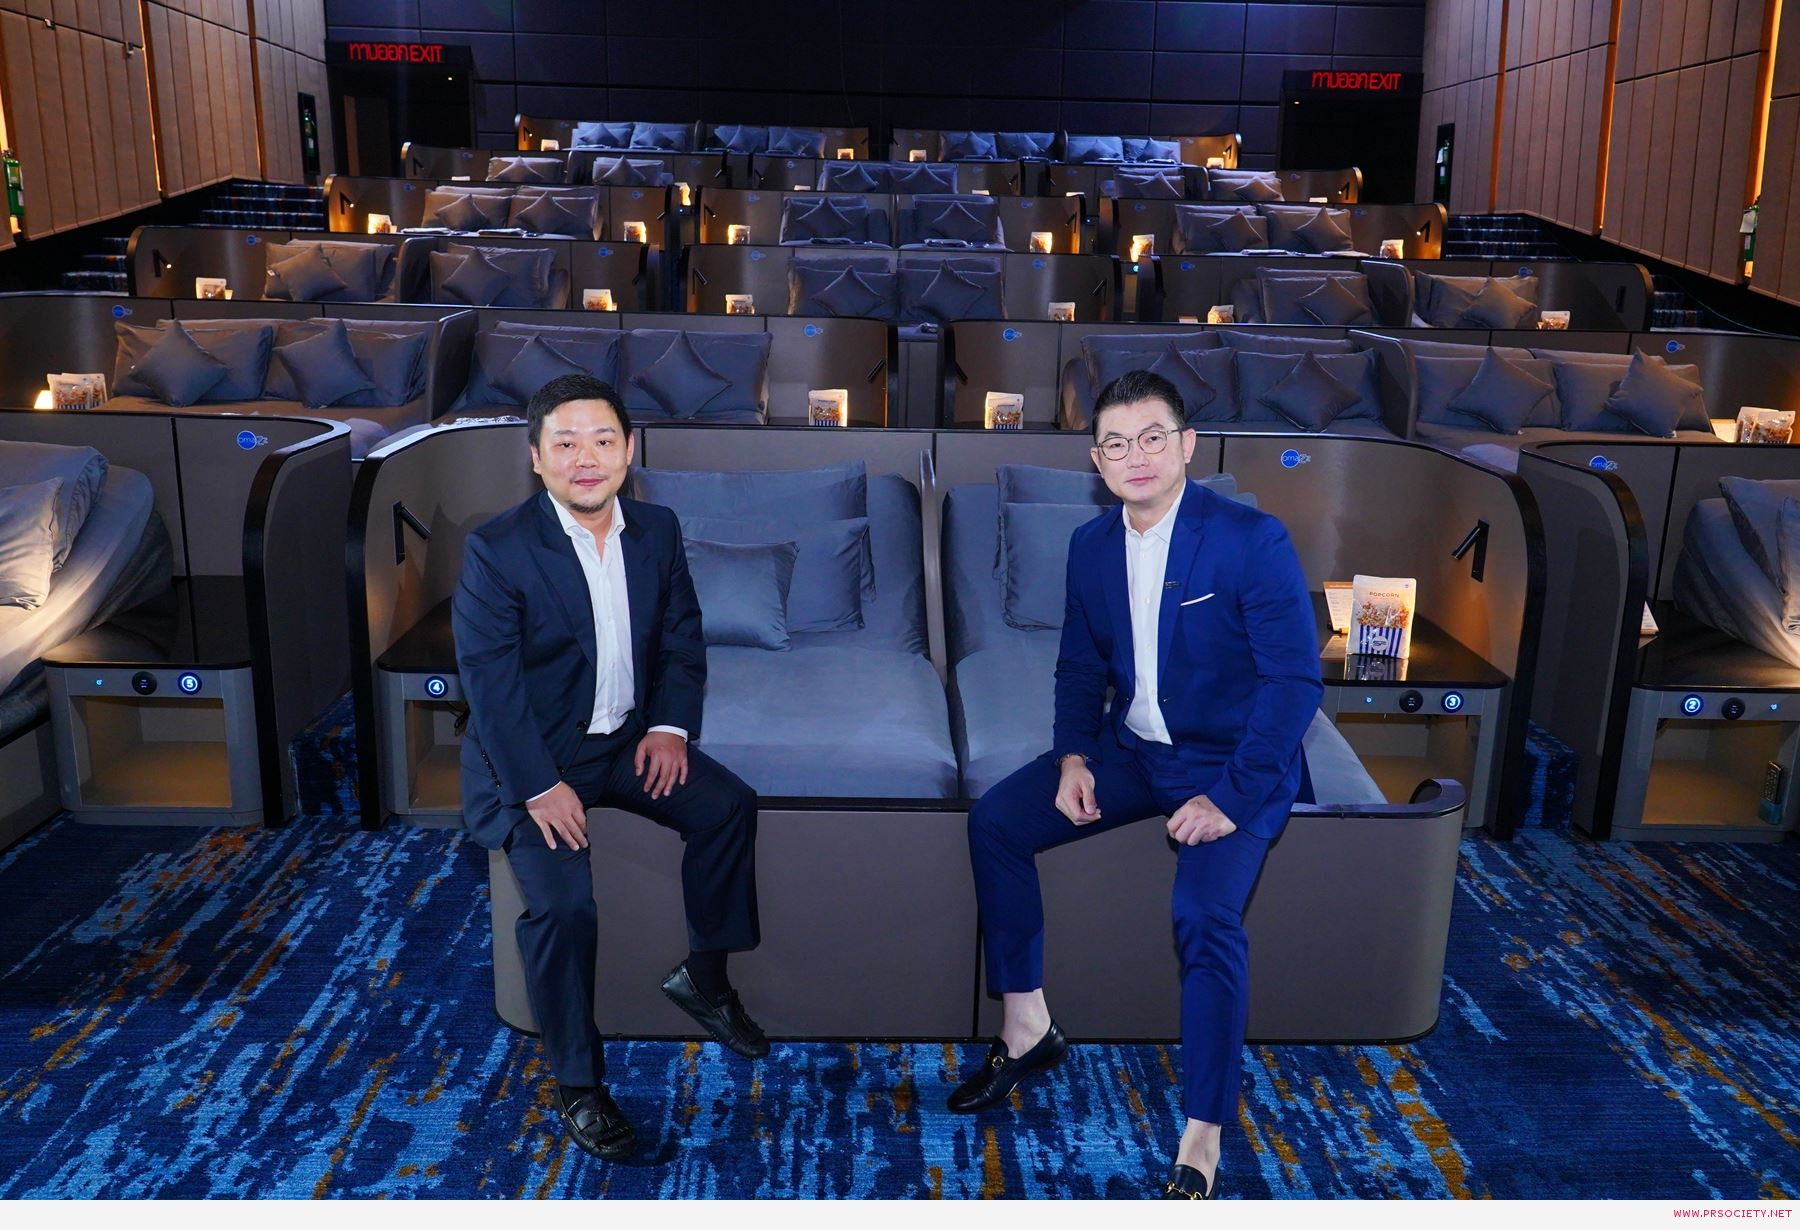 The Bed Cinema by Omazz_ผู้บริหาร SF และ Omazz 2